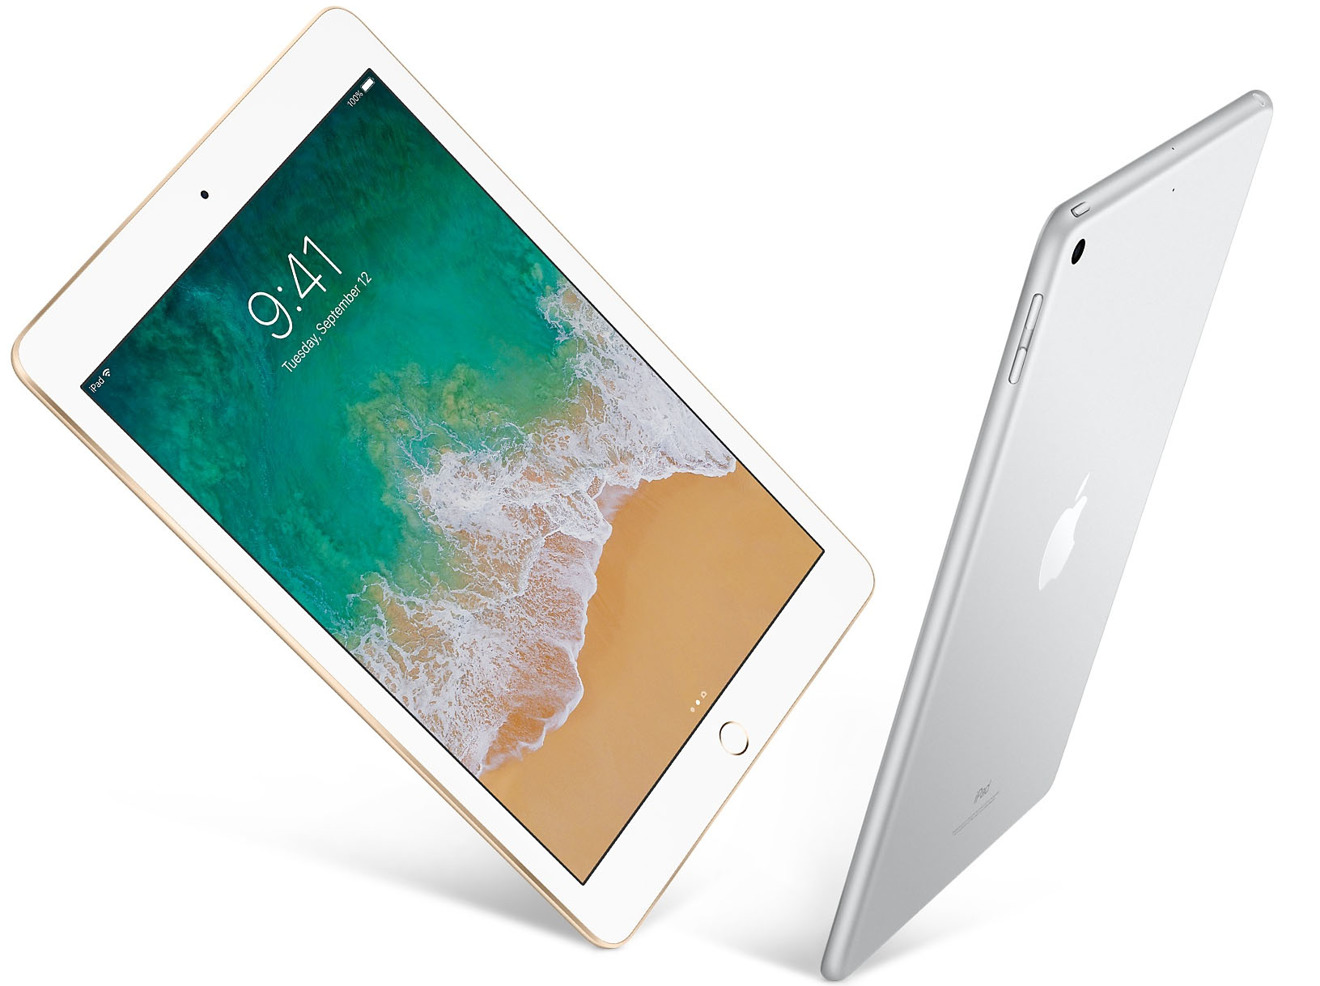 Apple 2017 iPads in Gold and Silver